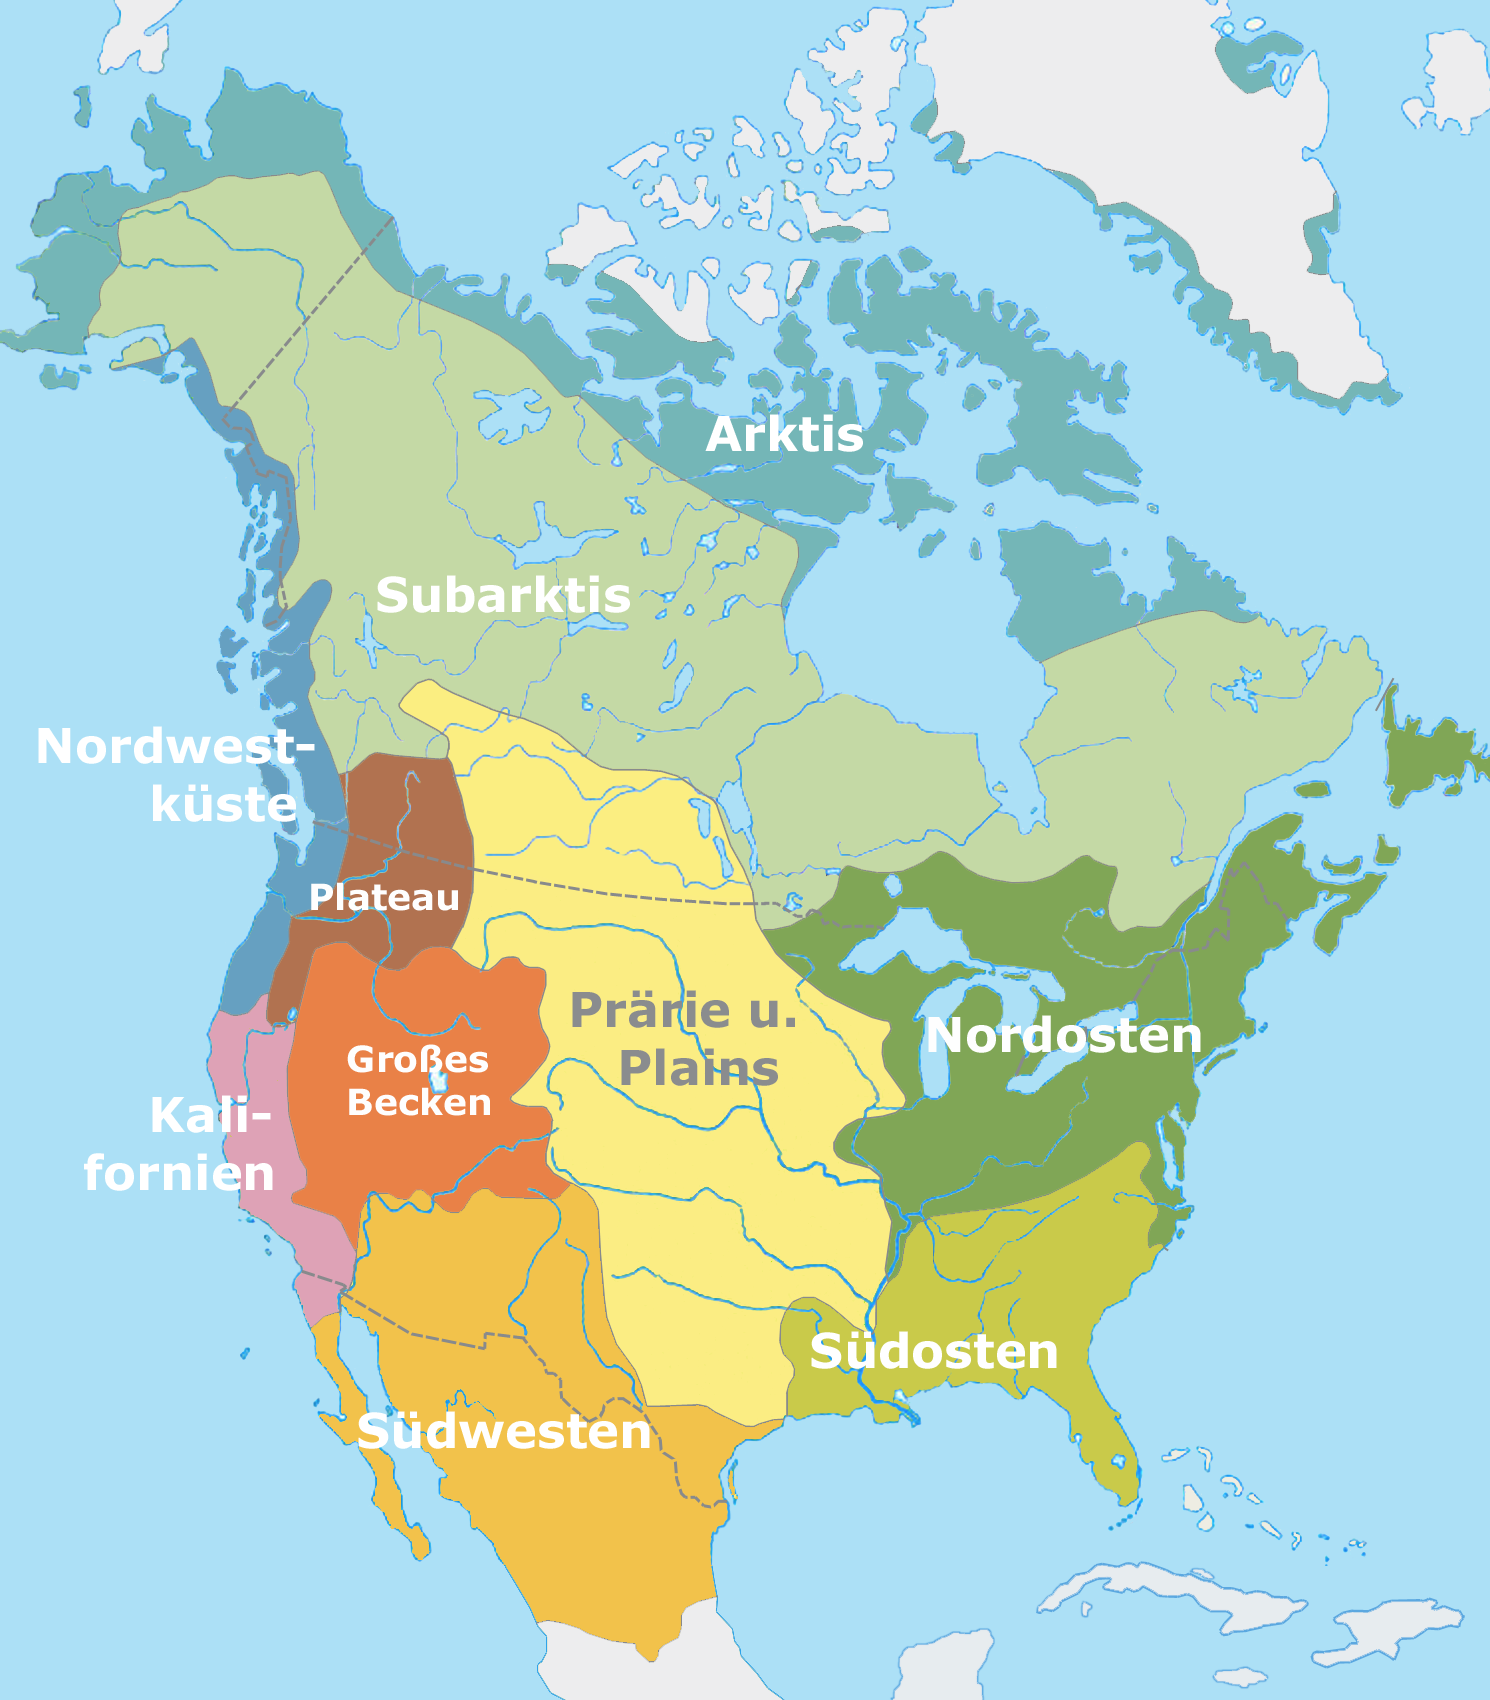 a study on the life of the subarctic indians in the canadian shield region Two-thirds of the province lies under the canadian shield and the ontario region became a vital (1986) gp de t glazebrook, life in ontario: a.